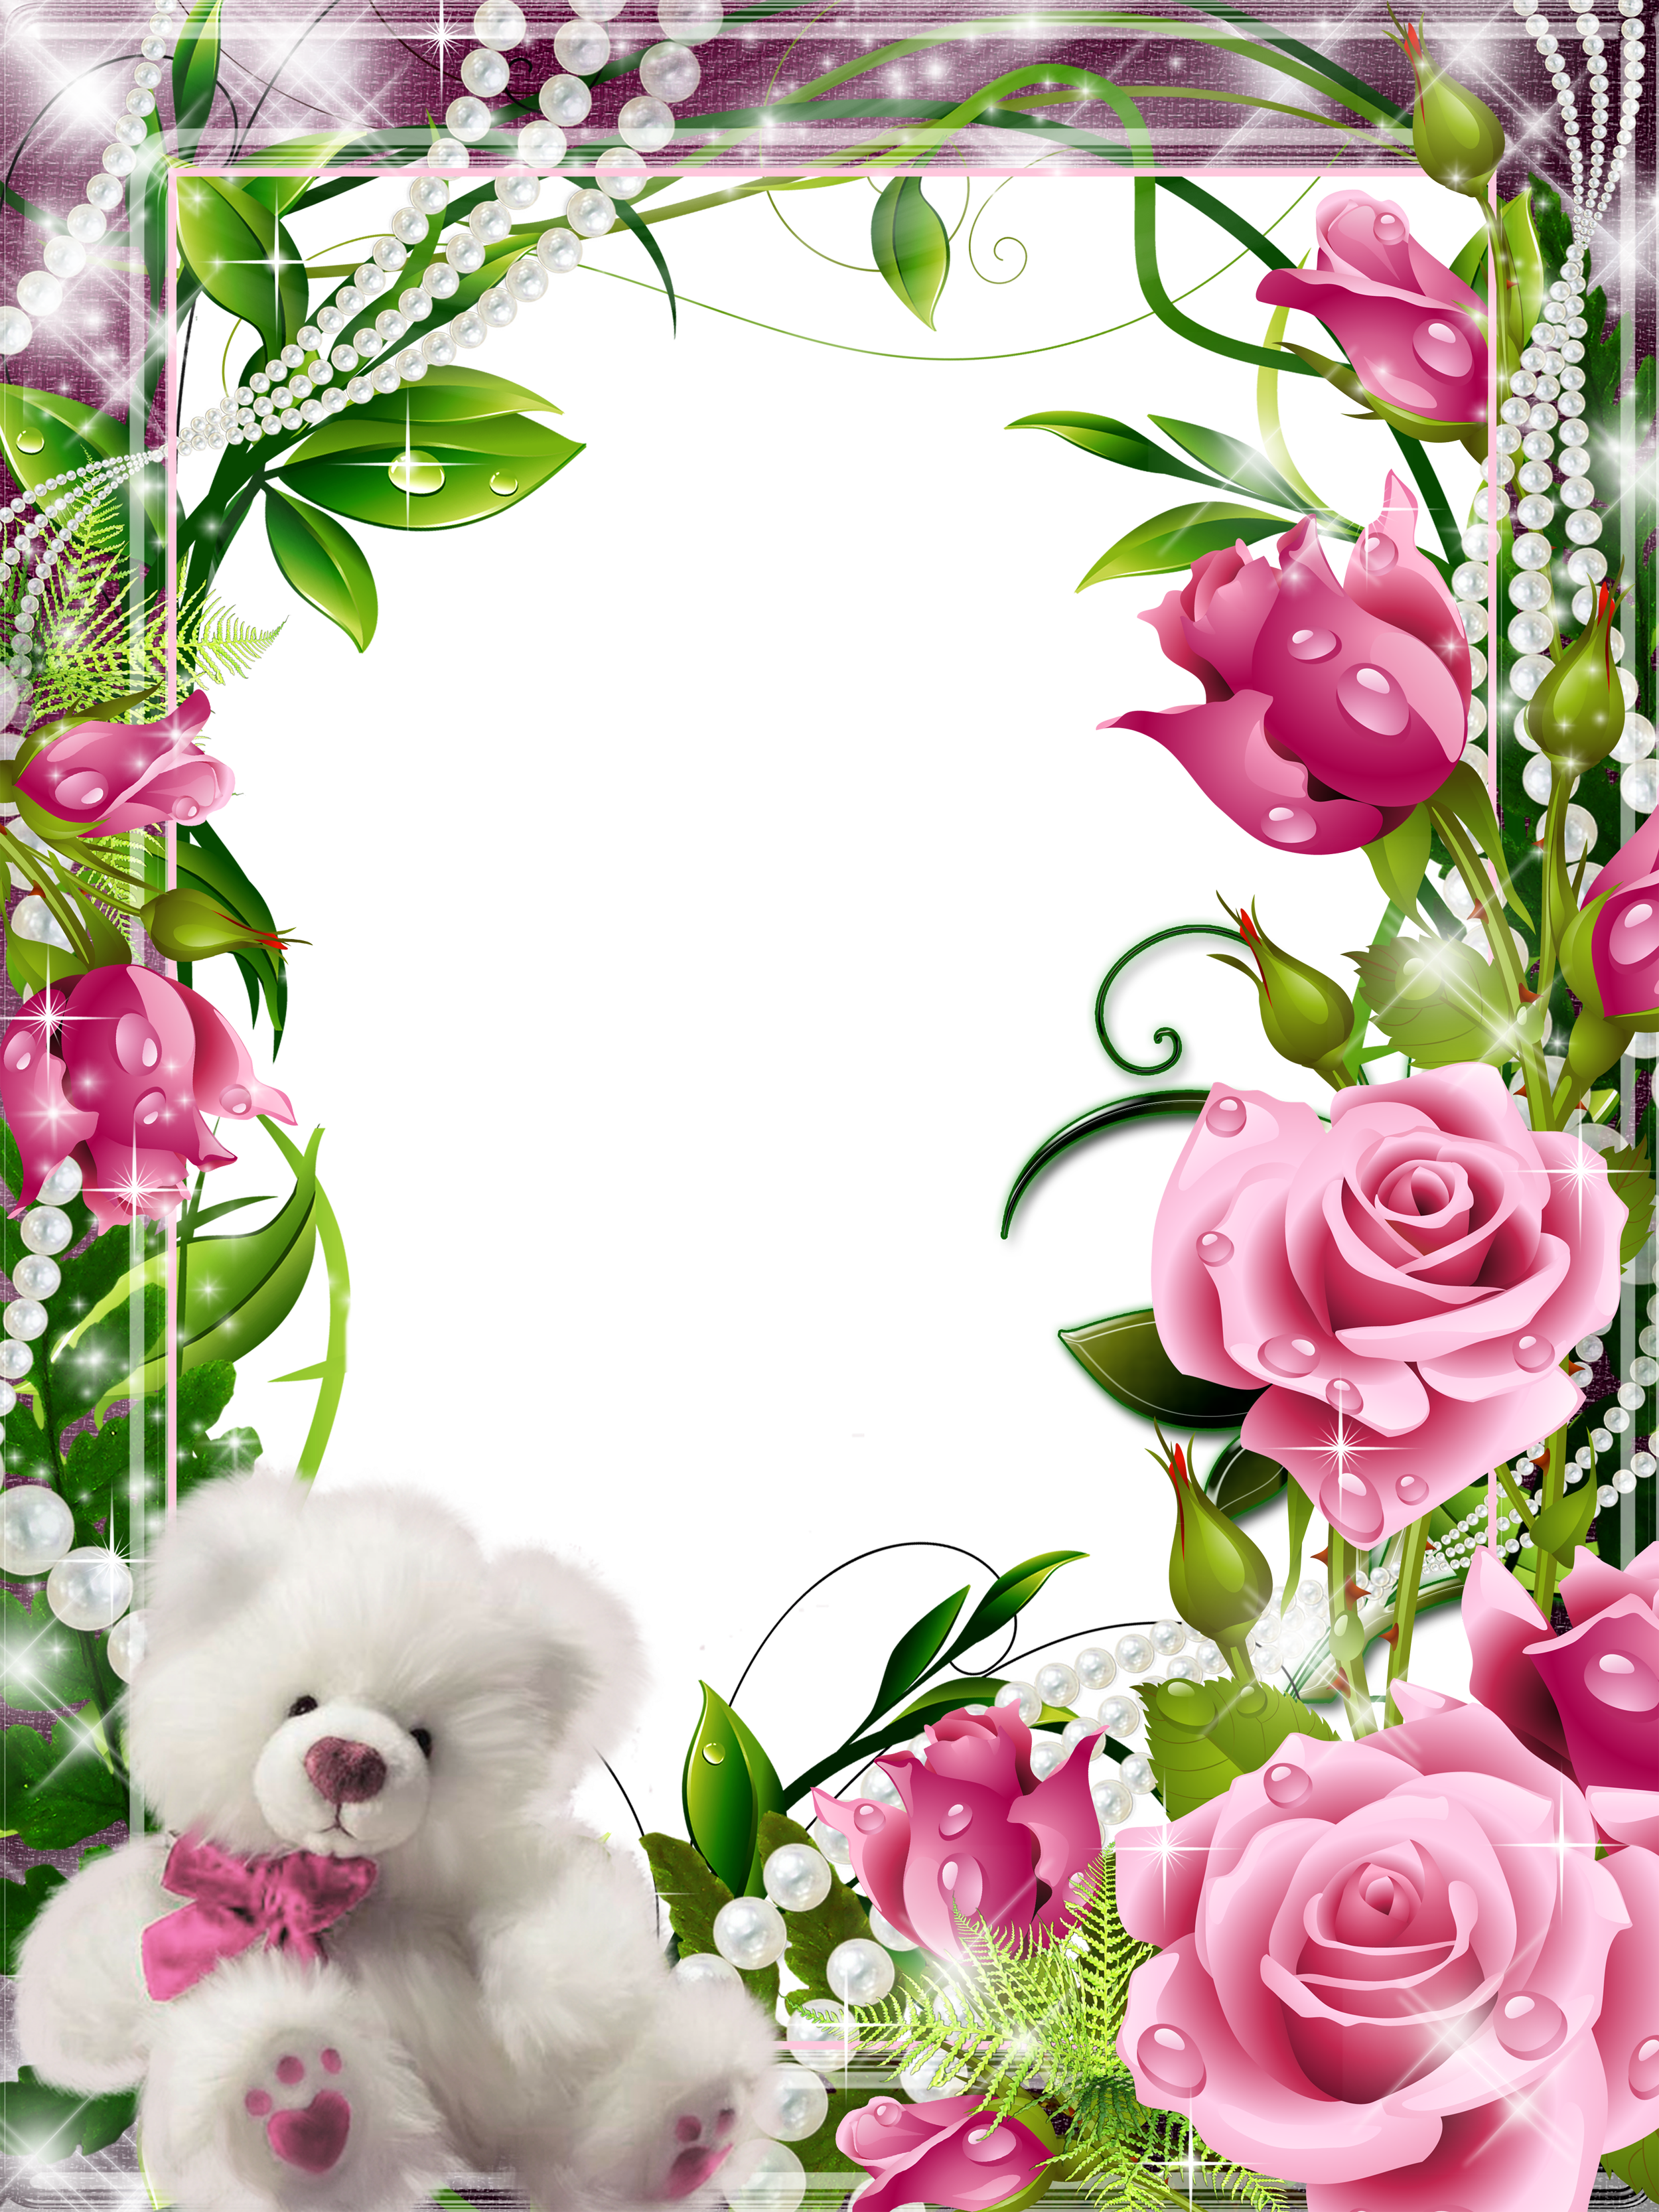 Transparent Frame with Pink Roses and White Teddy ‡ER‡EVE